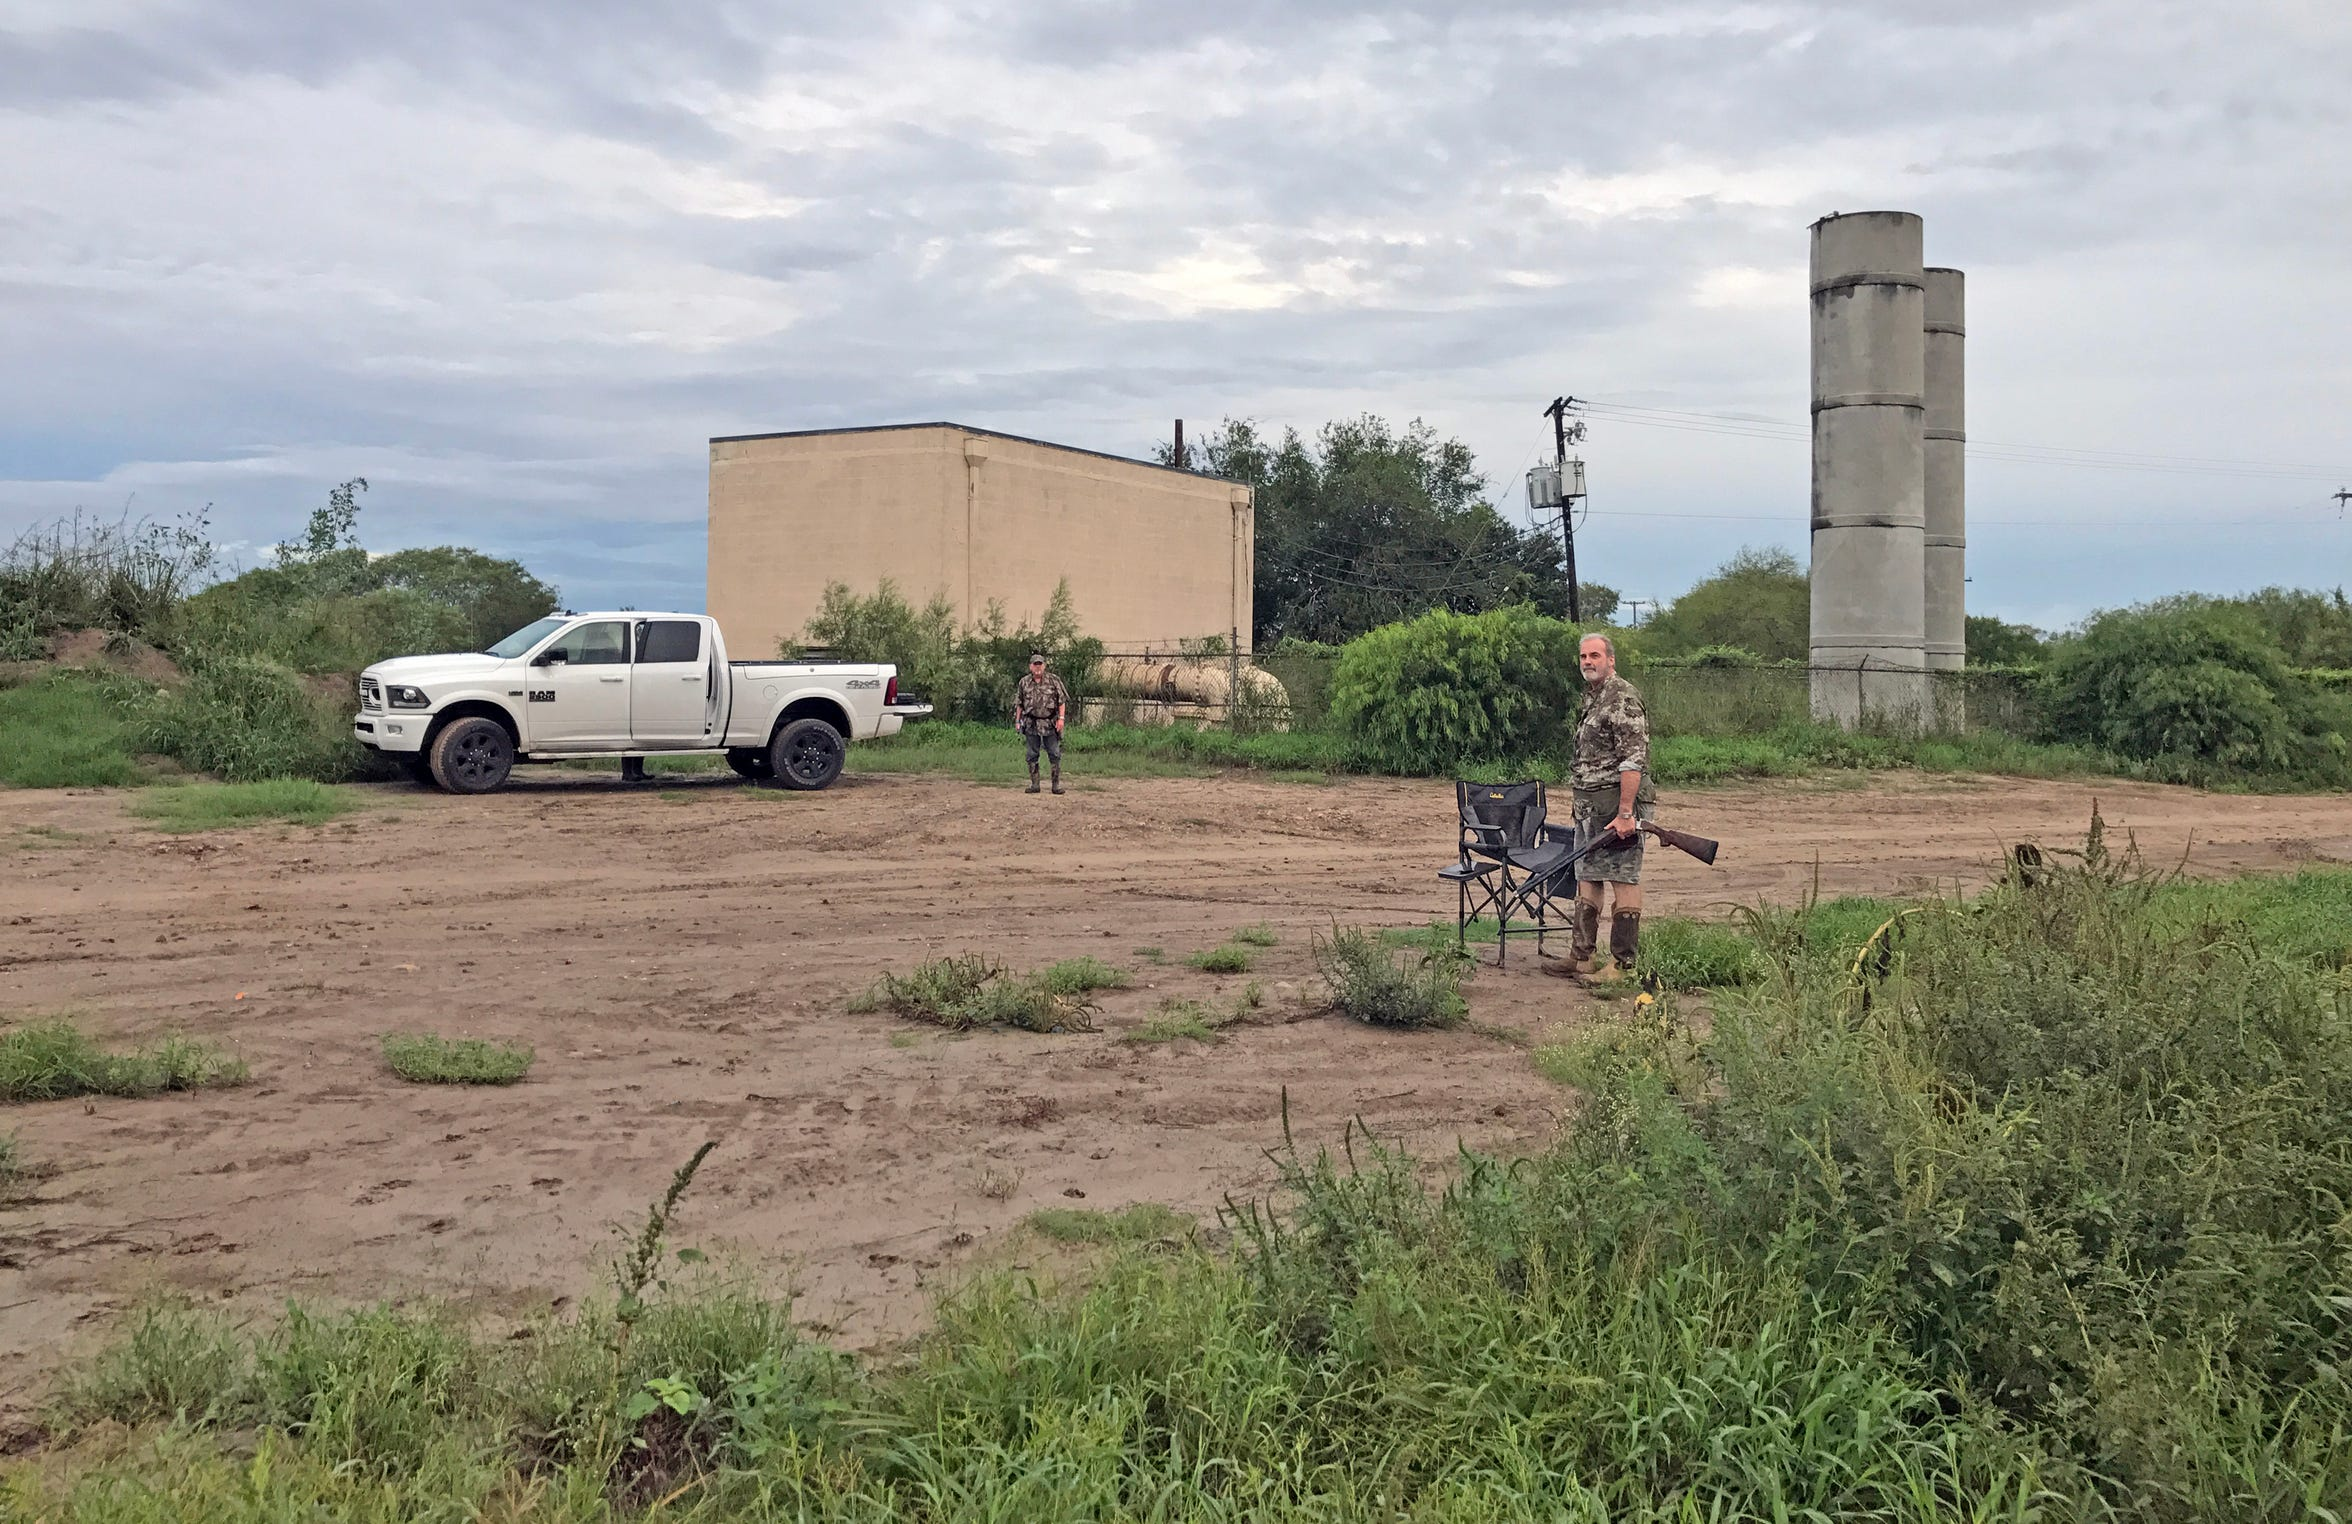 If you recognize this scene, then chances are you have hunted in the Rio Grande Valley, where these water pumps and towers are common.